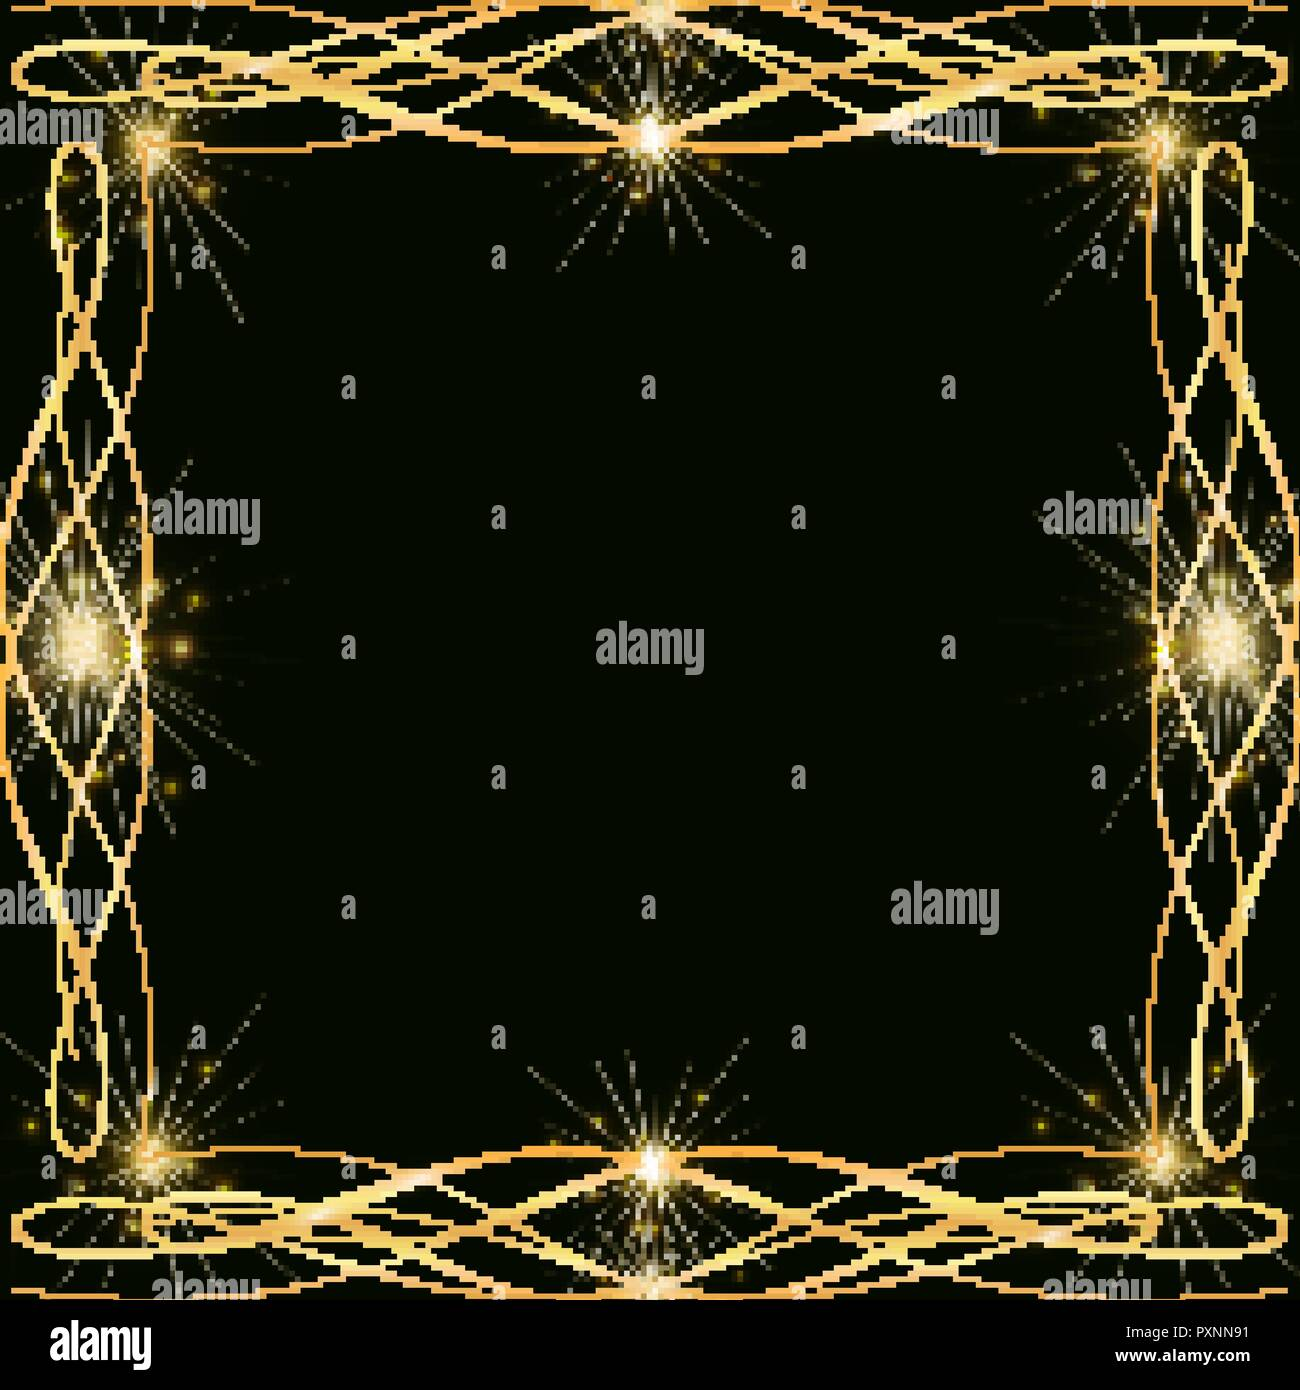 golden decoration frame with sparkles and highlights template for a christmas new year card golden borders in the shape of a square on a dark backr